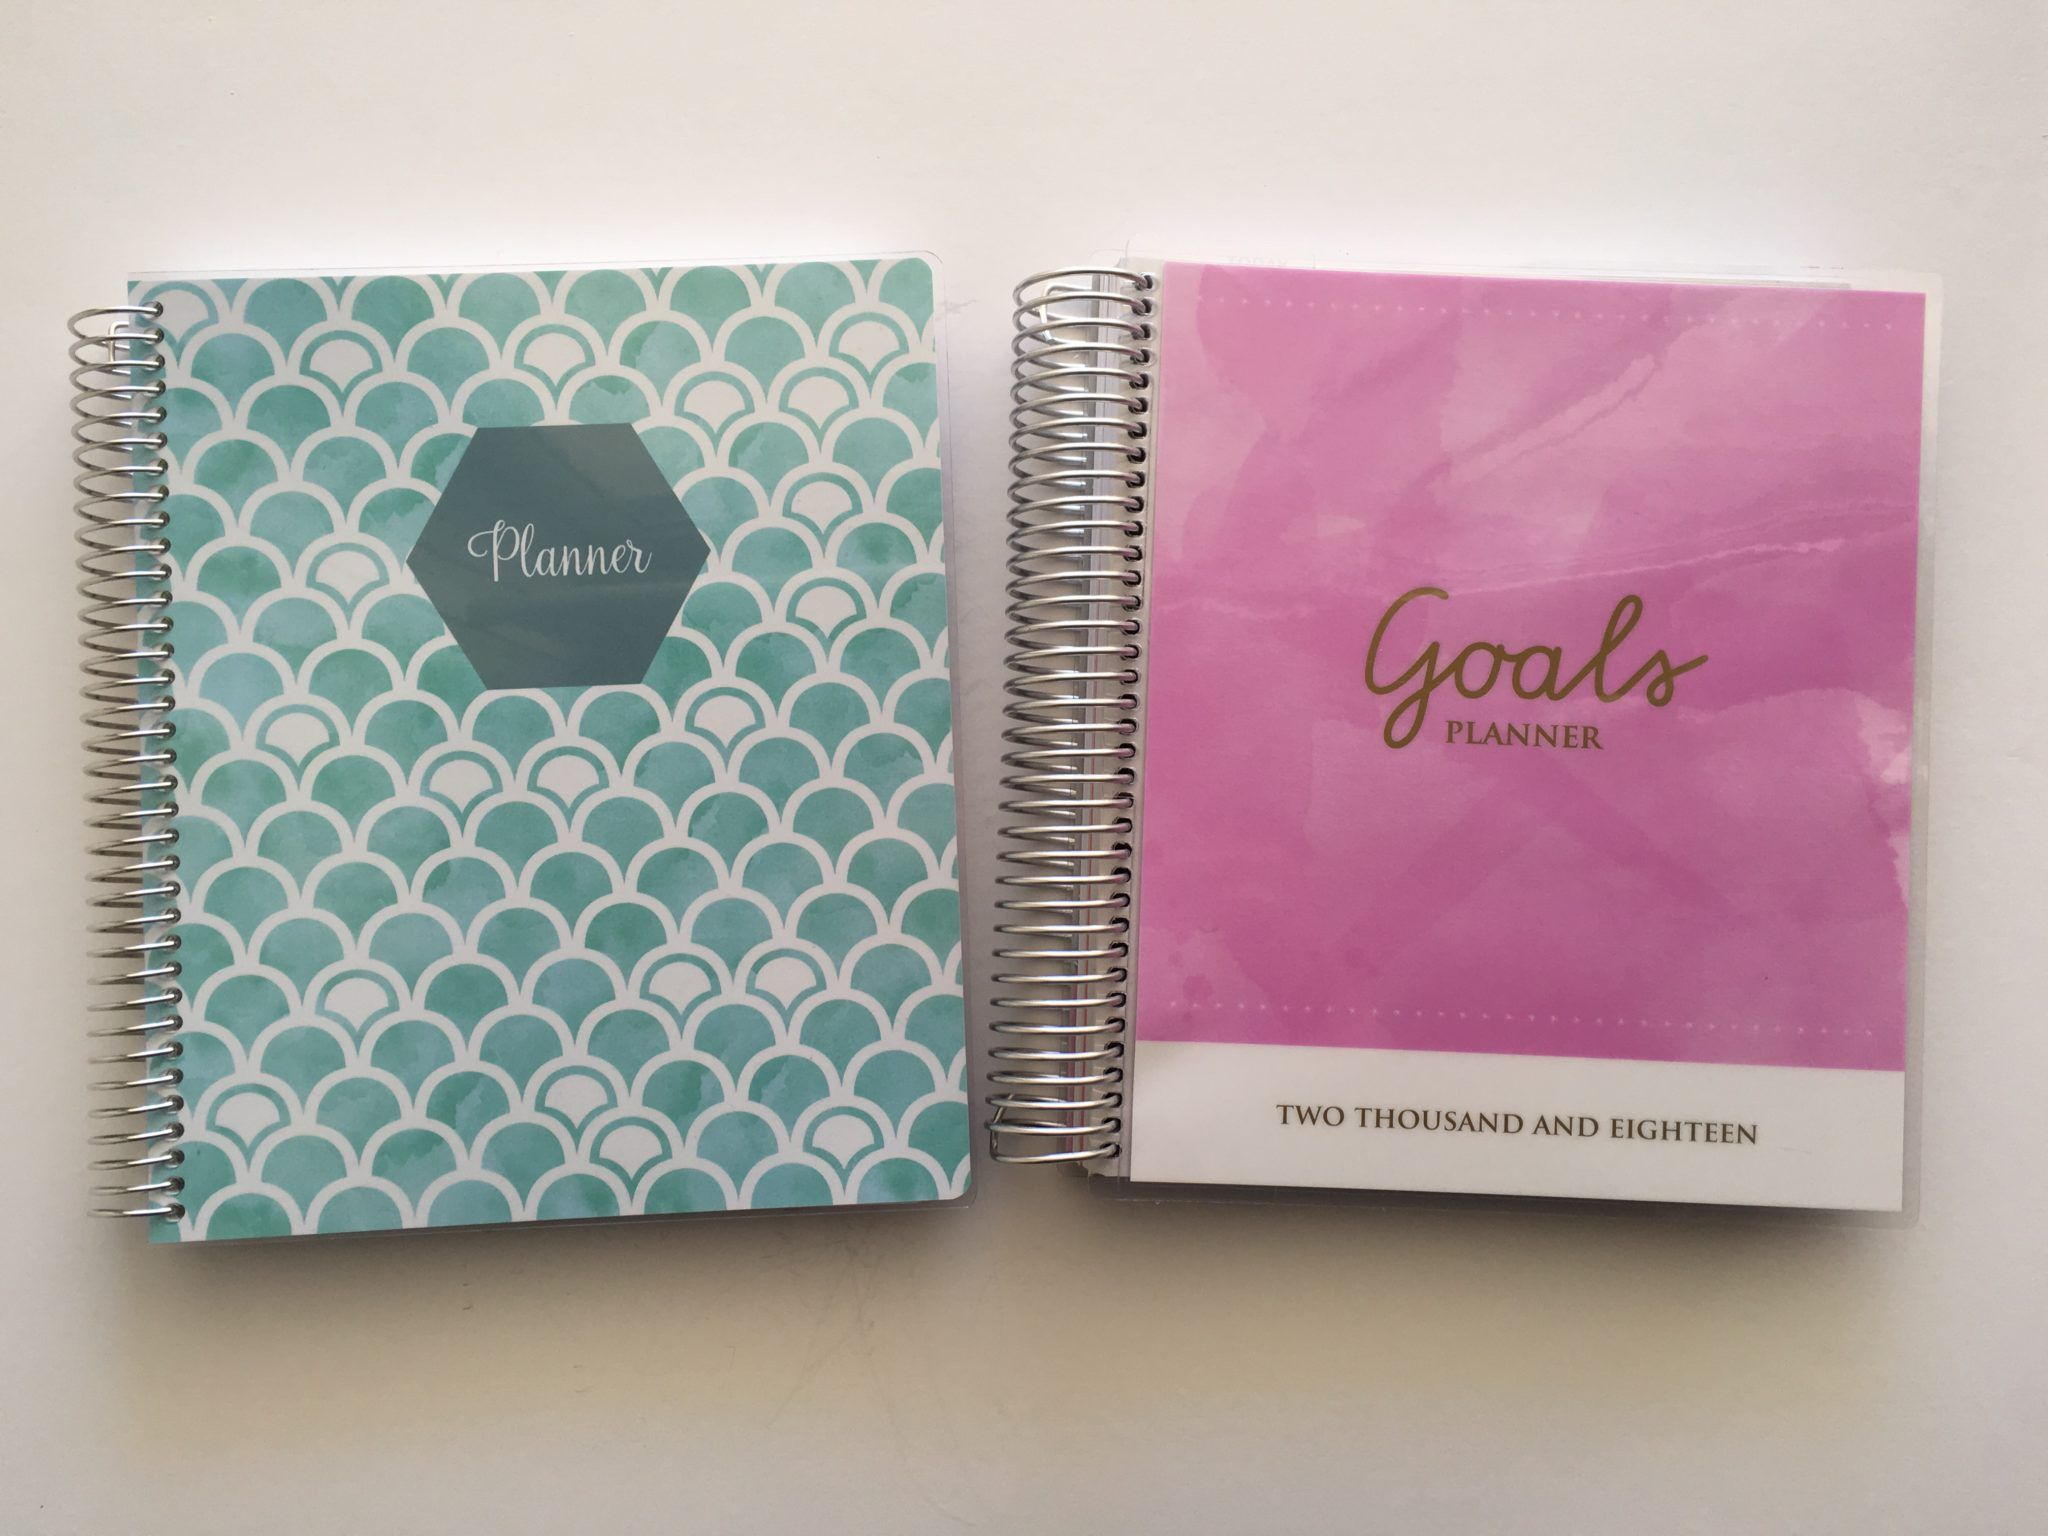 Otto 2018 business planner review from officeworks business otto 2018 goals planner officeworks size comparison to plum paper planner pros cons similar peek inside australian planner vertical reheart Images